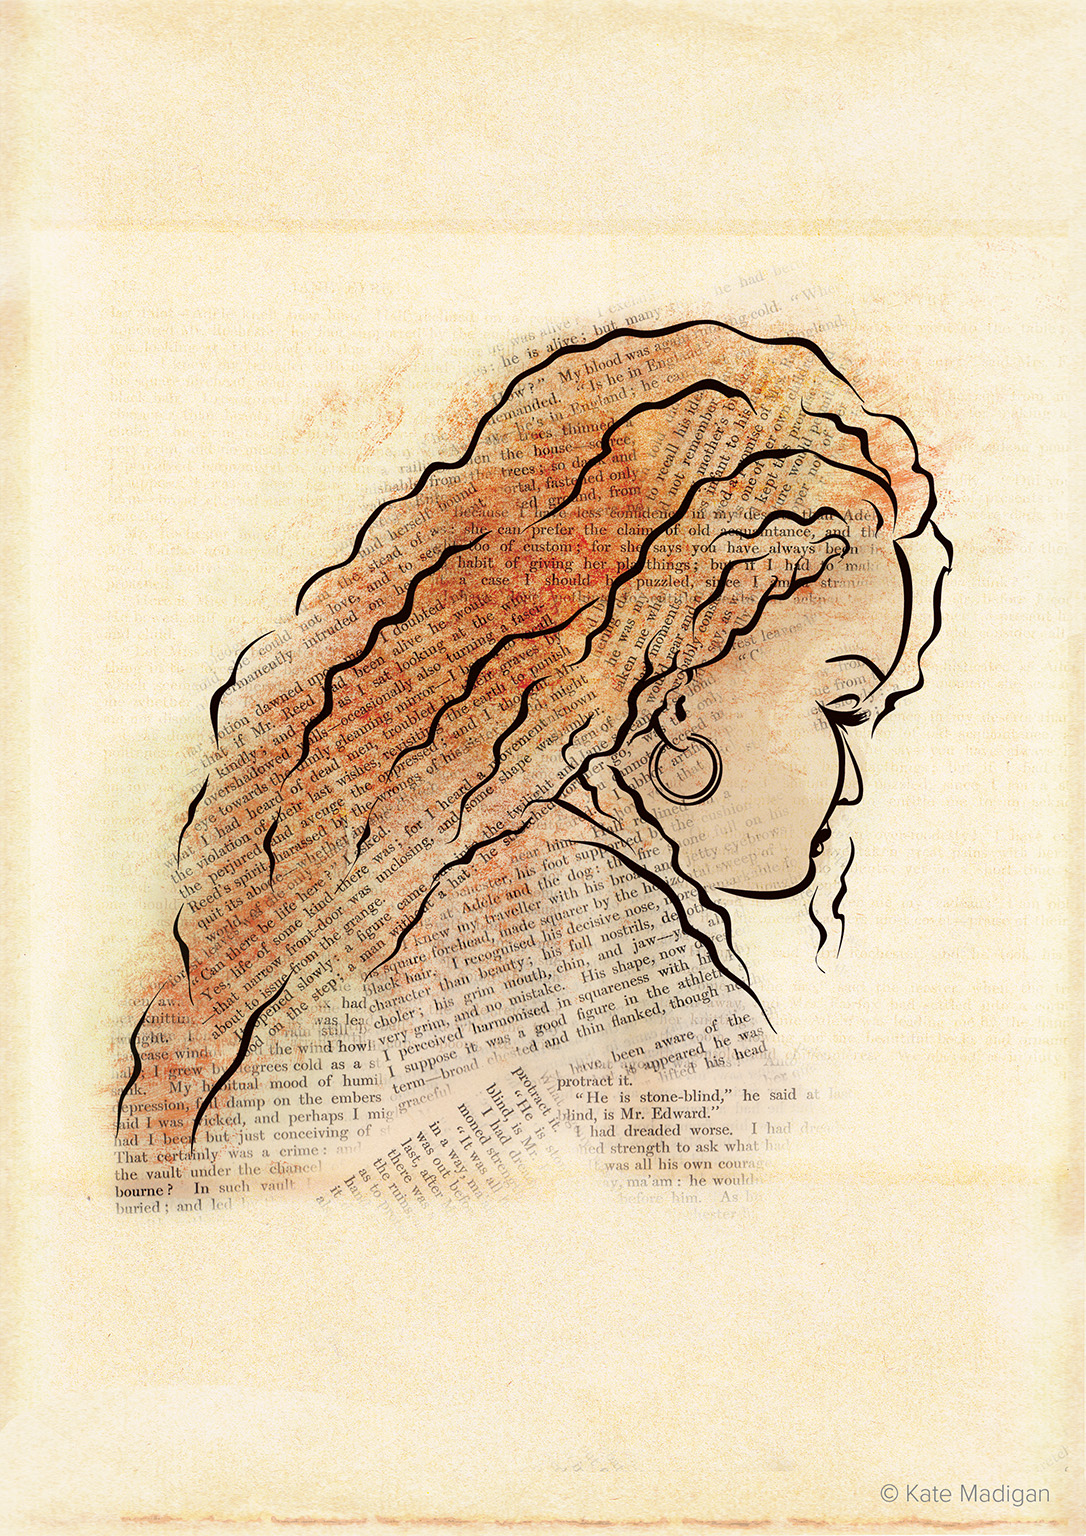 Line drawing of a red-haired woman absorbed in Charlotte Bronte's Jane Eyre. Passages from the book have been scanned in and used to shade her hair and clothing. Created as part of my solo exhibition at Blackwell's Bookshop Oxford.Copyright Kate Madigan.